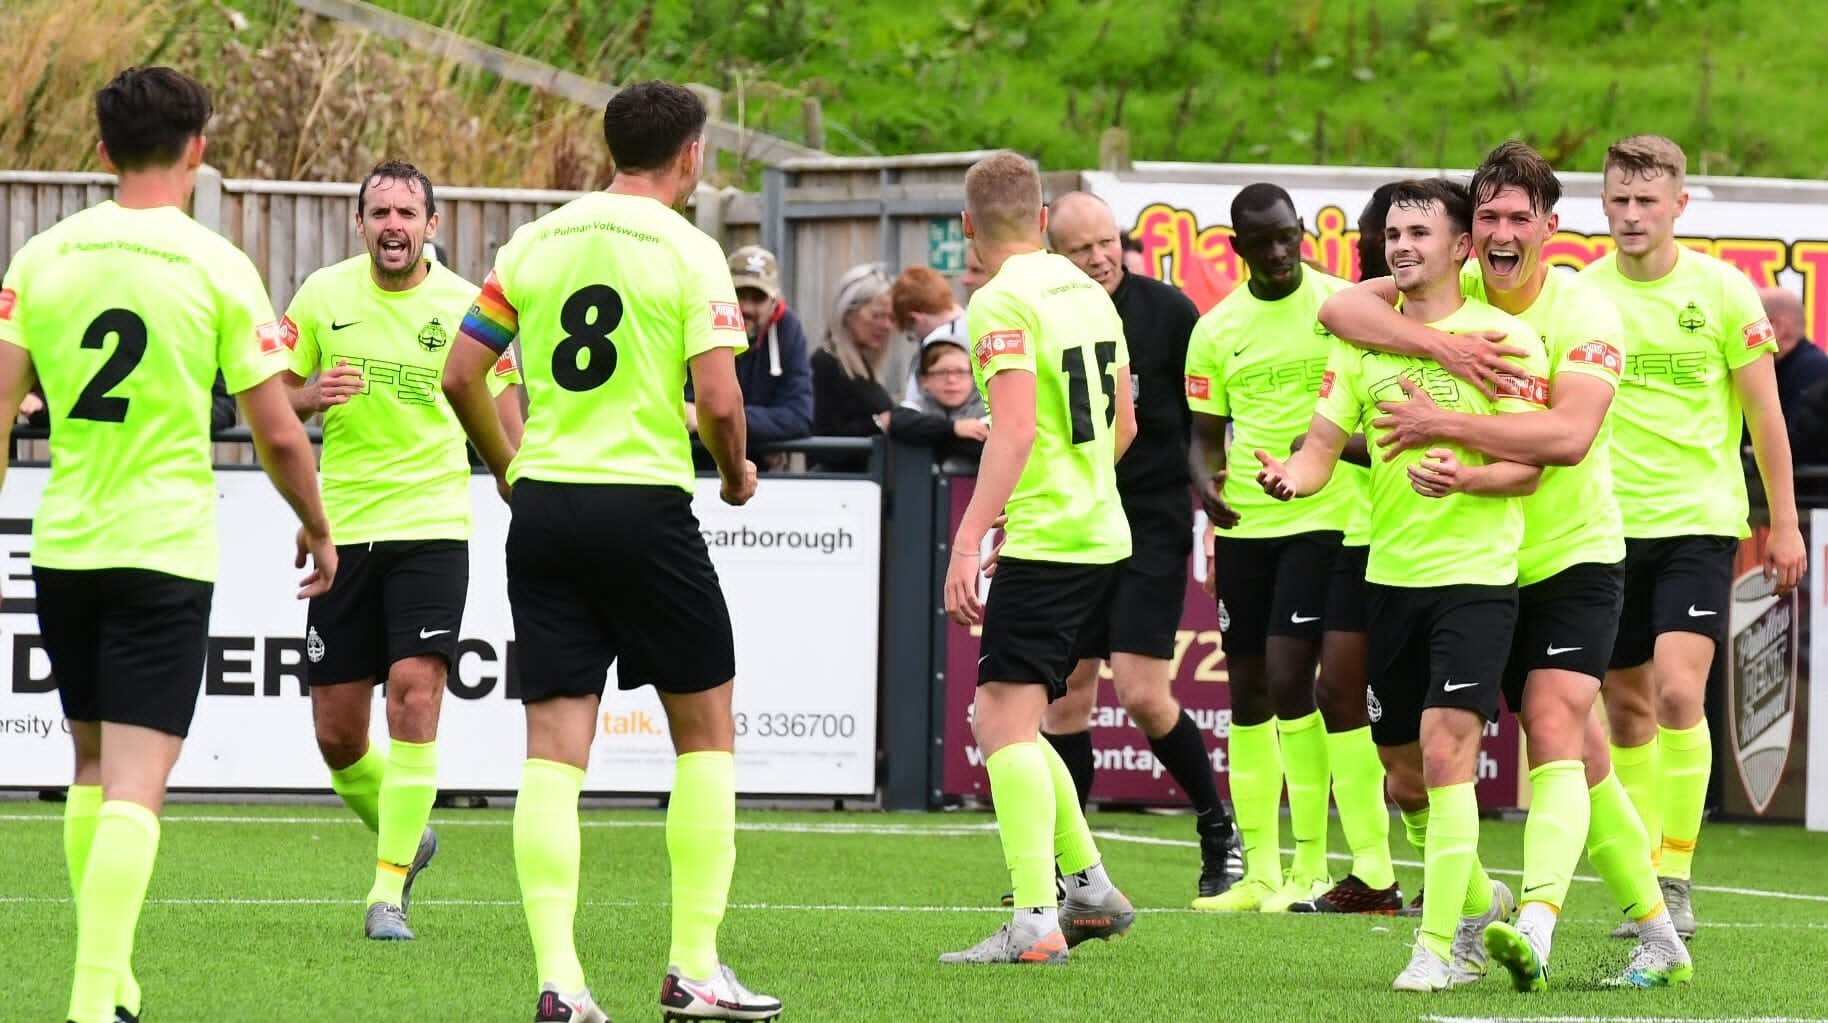 Match report: Scarborough Athletic 0-2 South Shields